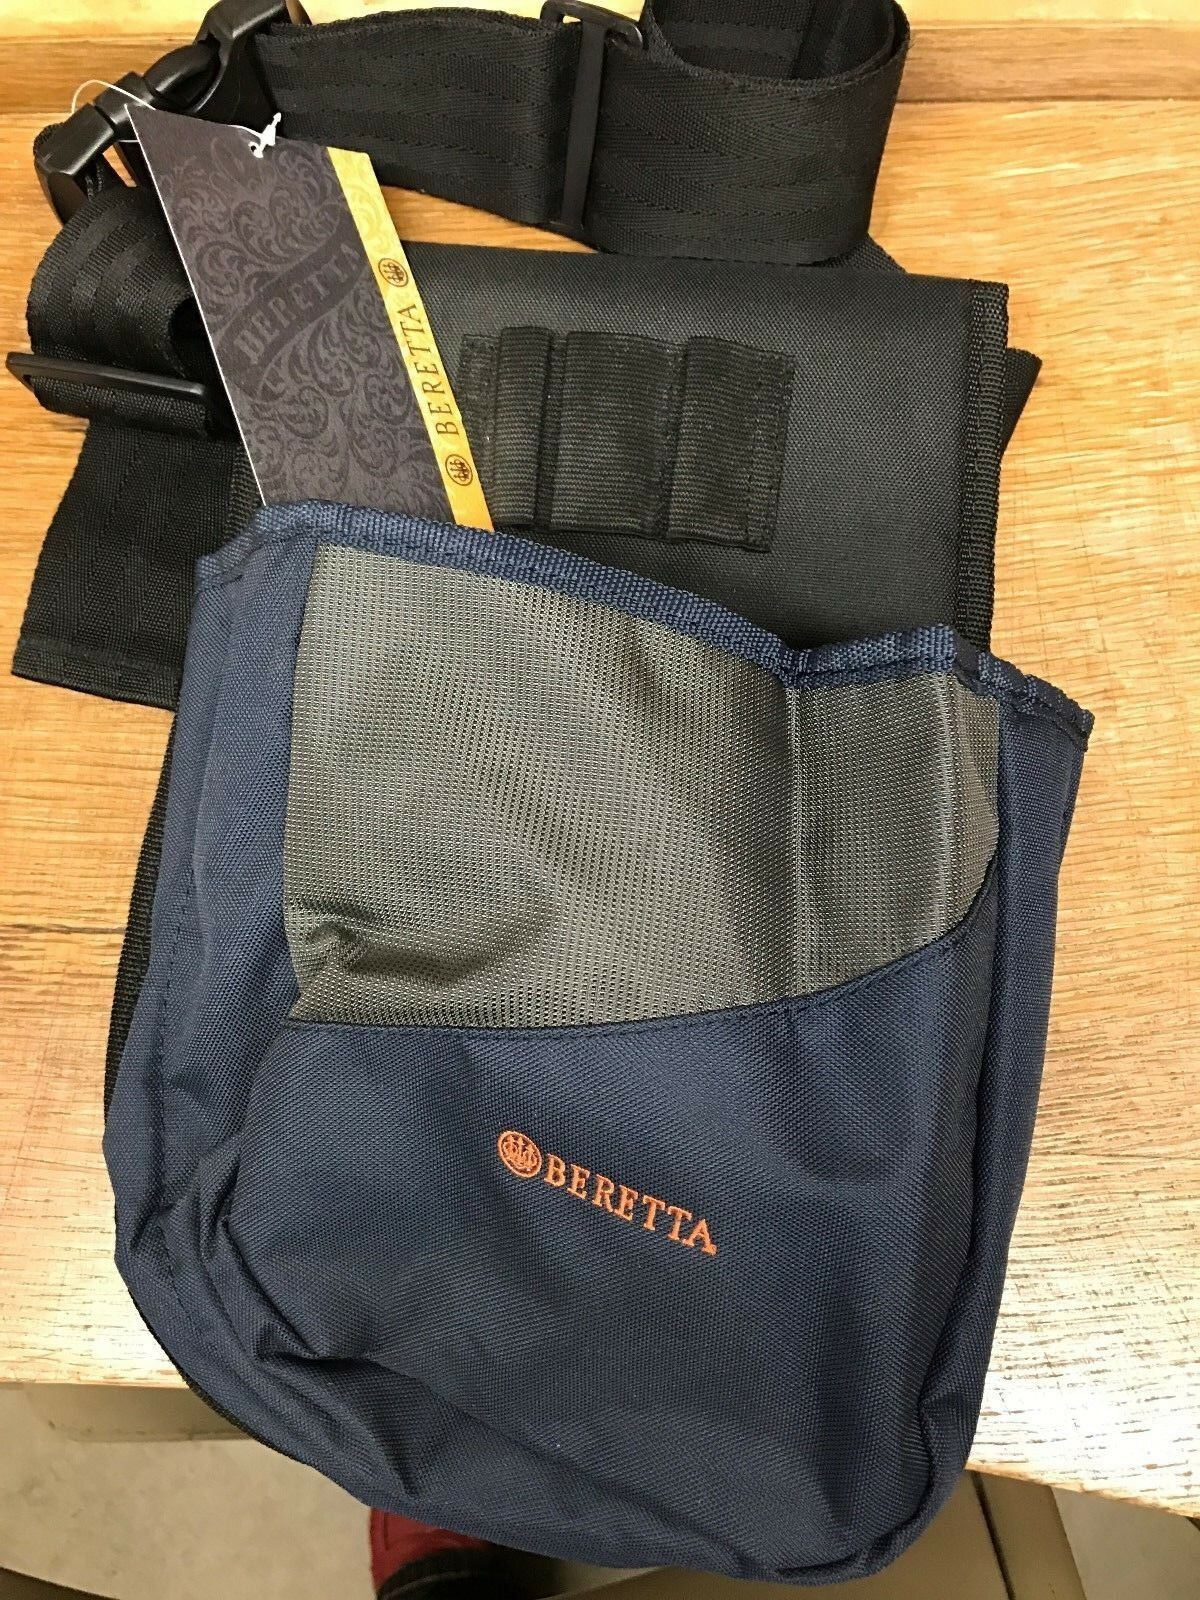 Beretta Pro Cartridge Shell Pouch With Belt 50 for Shooting Hunting WW ship